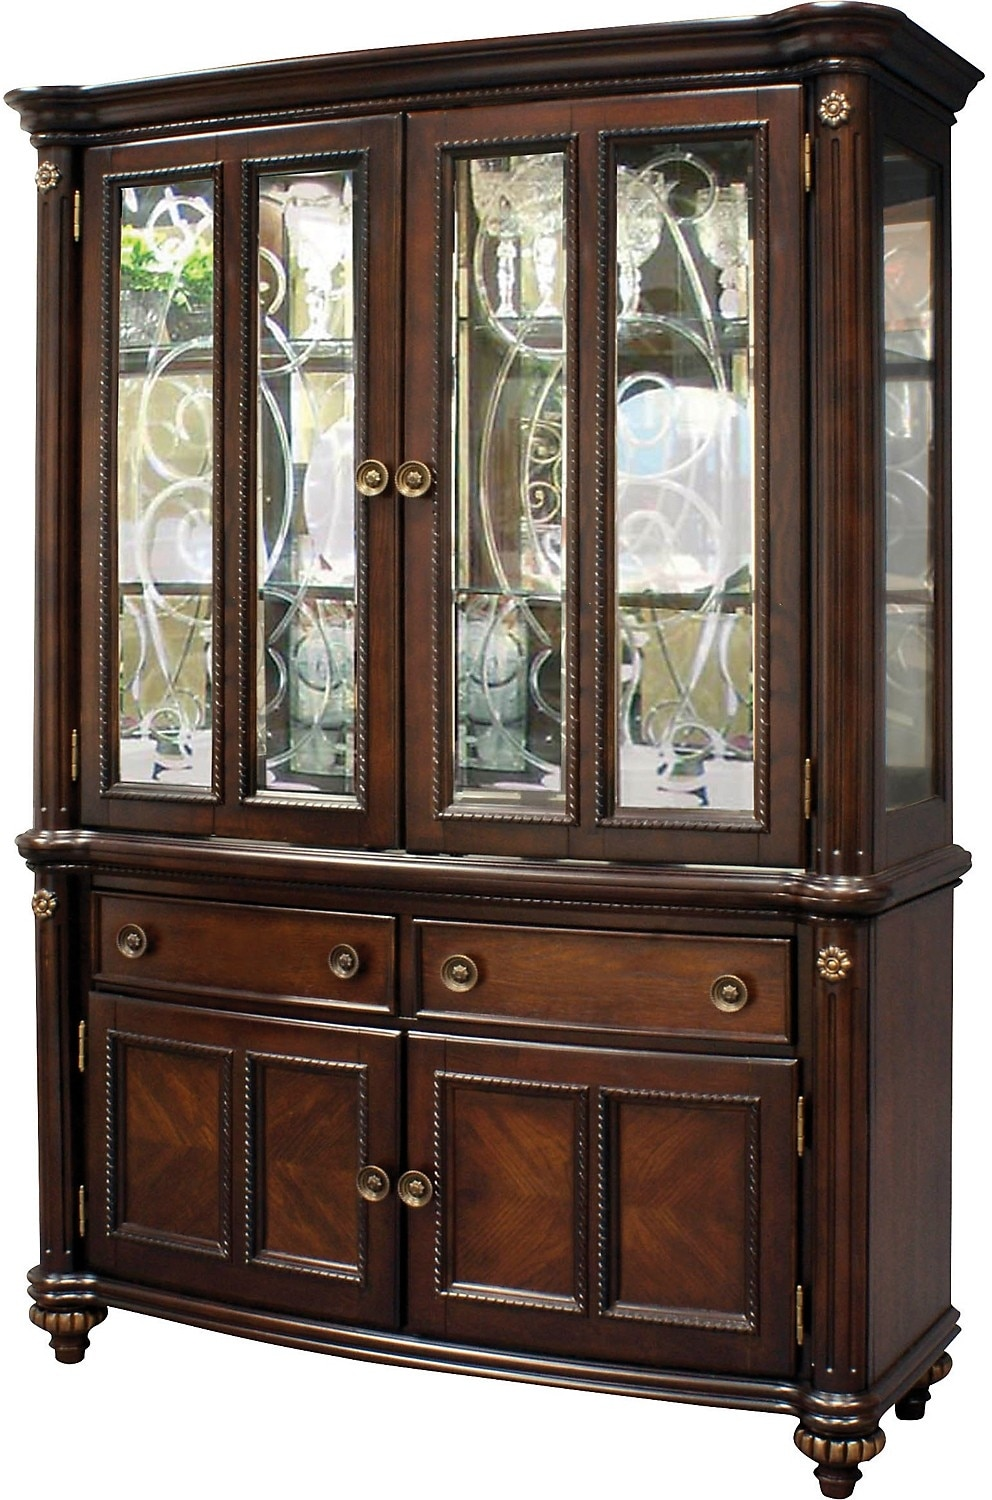 Dining Room Furniture - Newcastle Buffet and Hutch